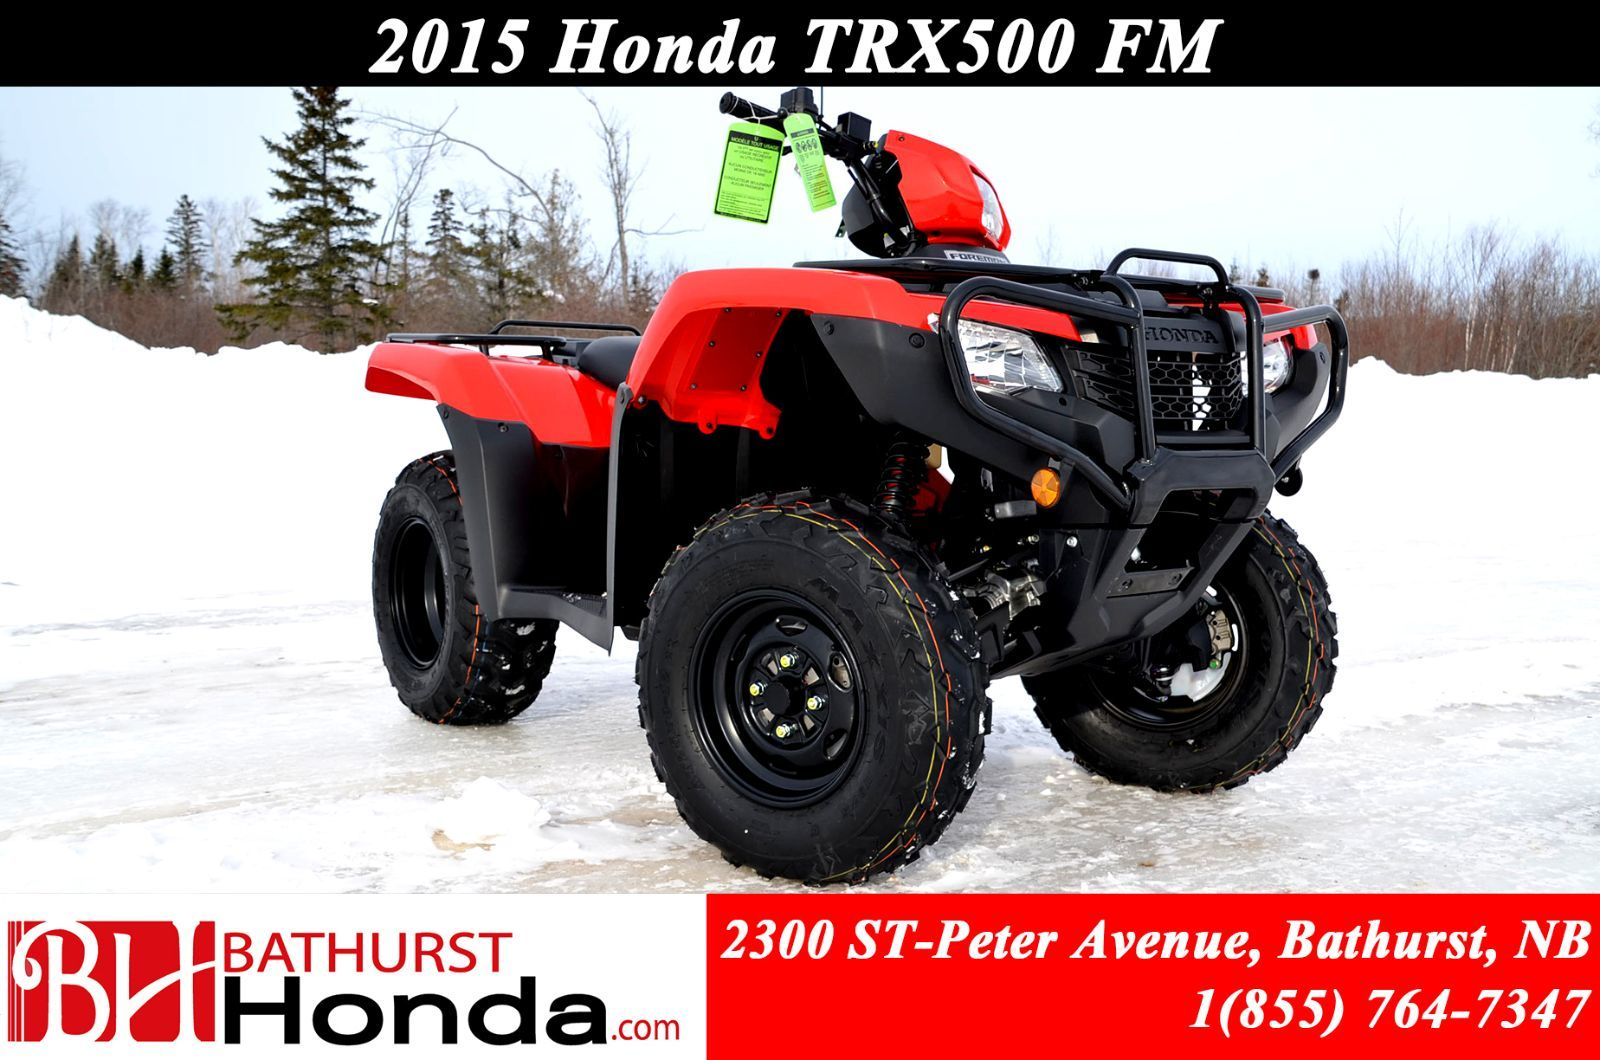 New 2015 Honda TRX500FM Four Wheel Drive! Manual (foot) shift with  automatic clutch! for sale in Bathurst - Bathurst Honda in Bathurst, New  Brunswick